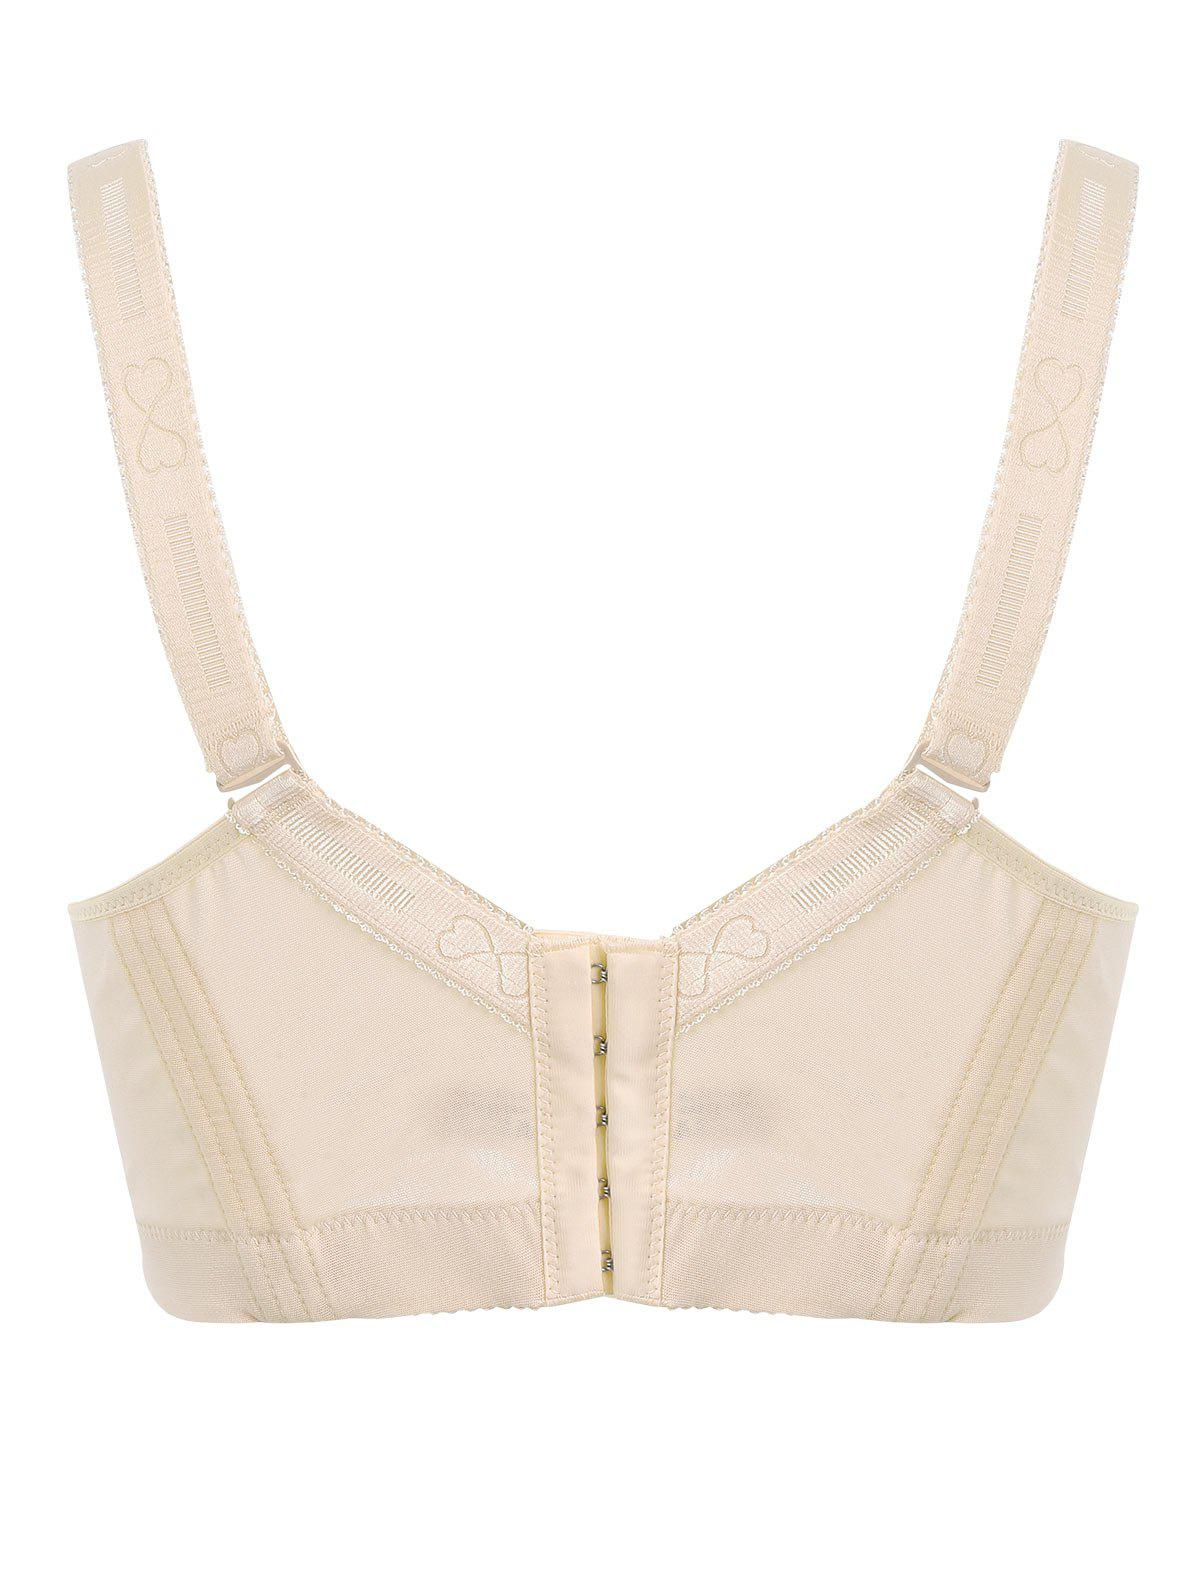 Padded Wirefree Floral Lace Panel Plus Size Bra - COMPLEXION 4XL